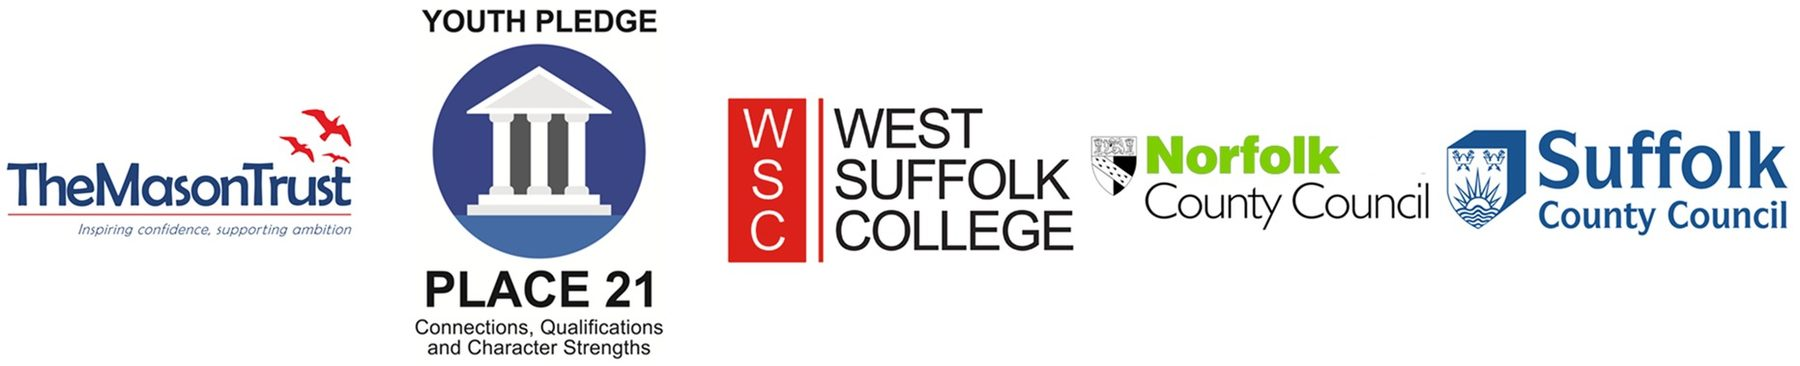 Site Image (CV Wizard Partners: The Mason Trust, Place 21, West Suffolk College, Norfolk County Council, Suffolk County Council)